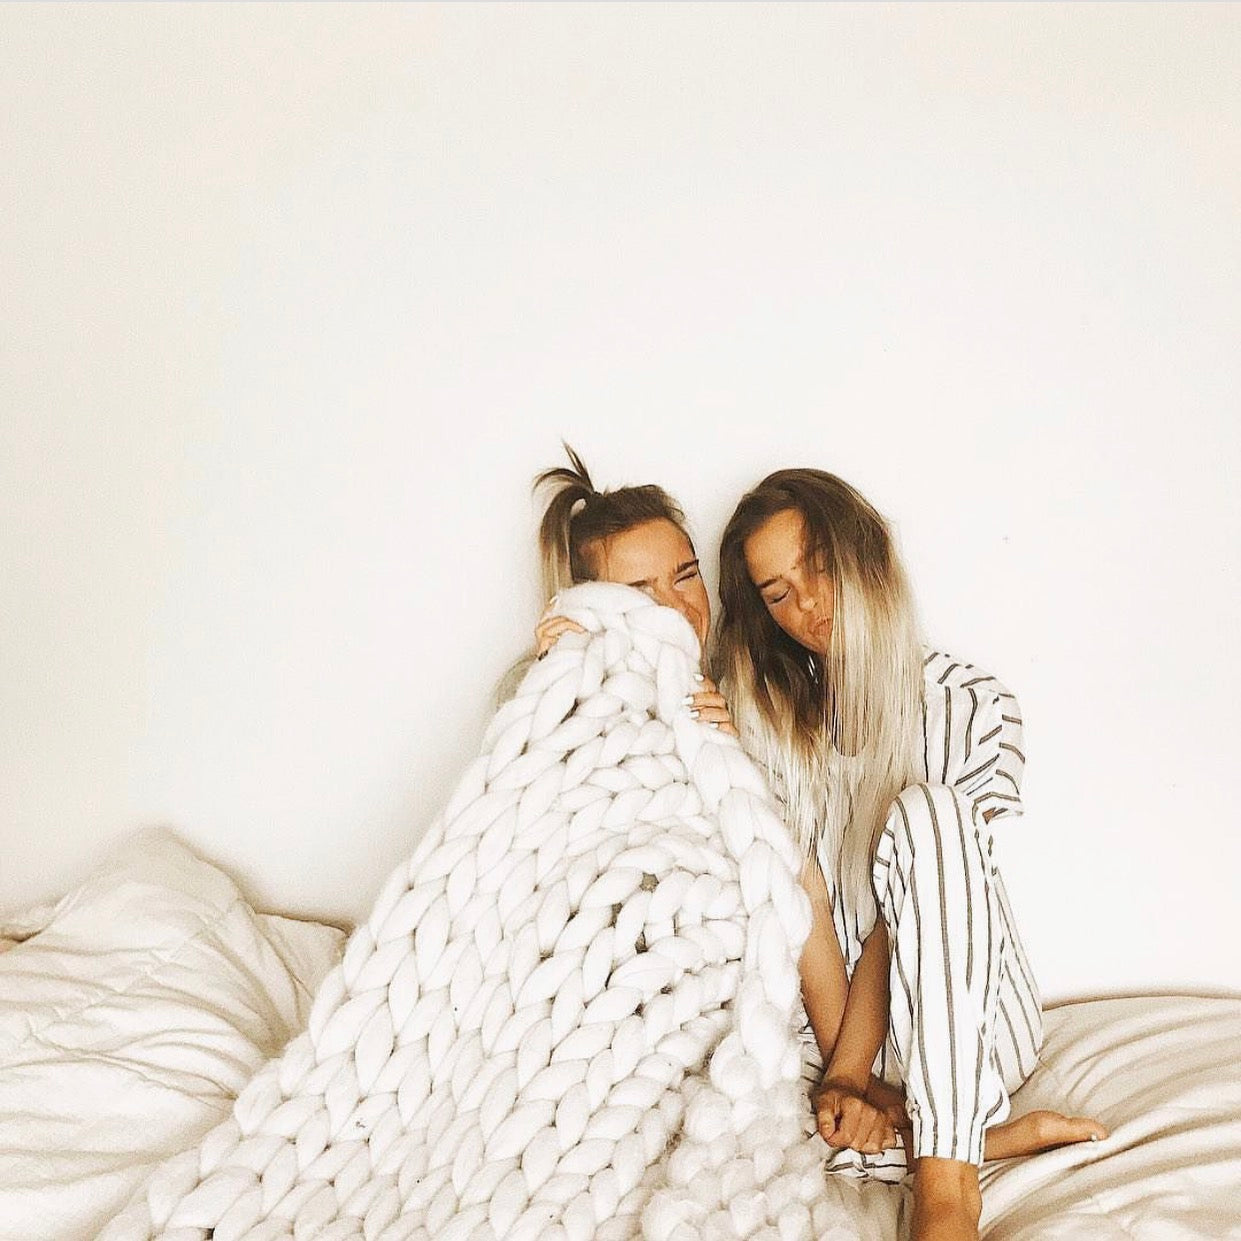 Two Girls Cuddle with Chunky Knit Blanket